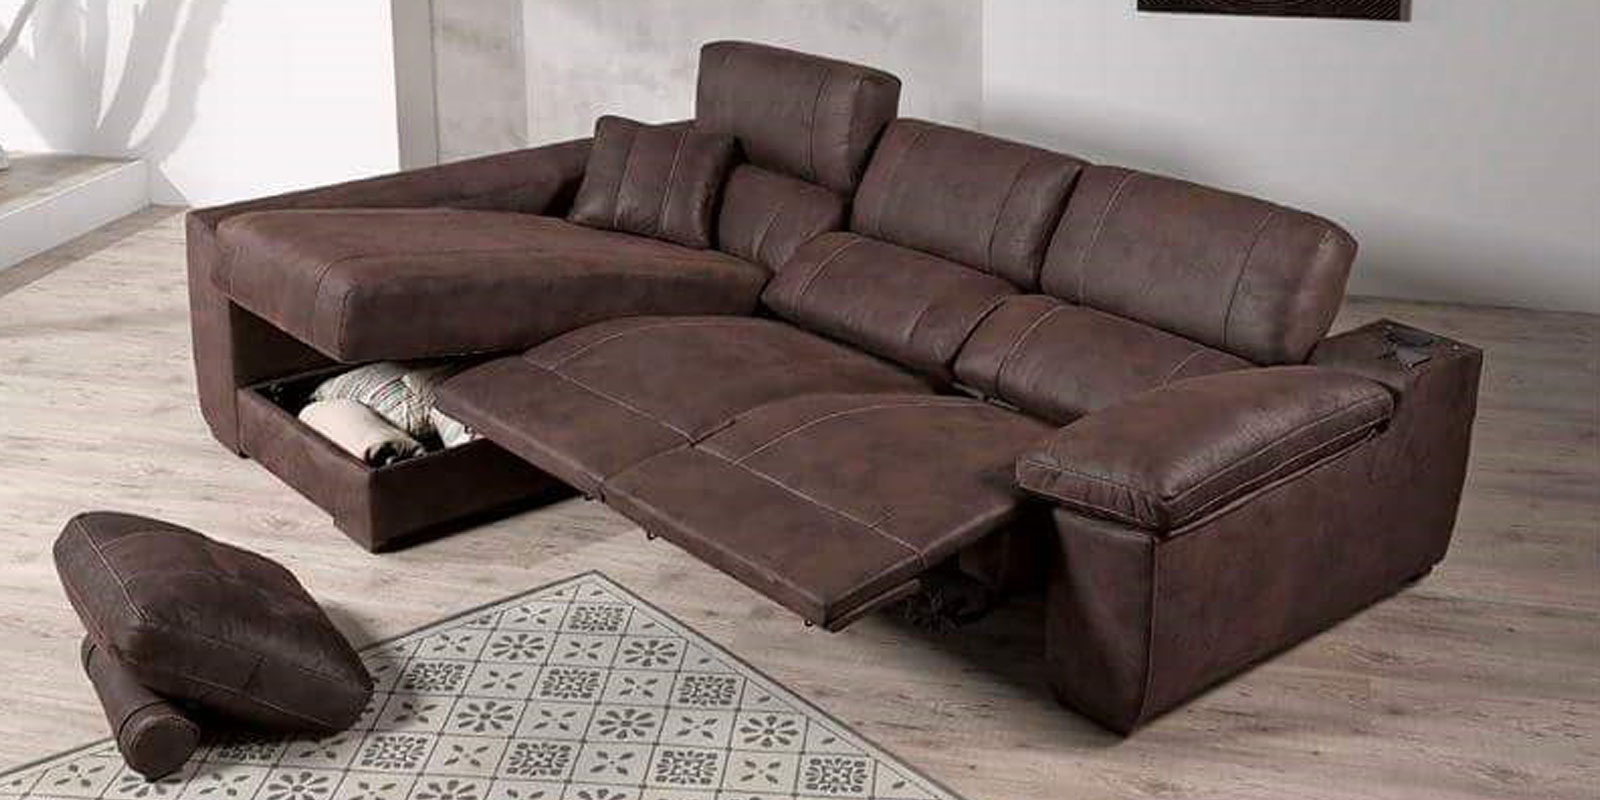 Sofa Outlet Alicante R4 Italiano Sofas Alicante Todo Sofa